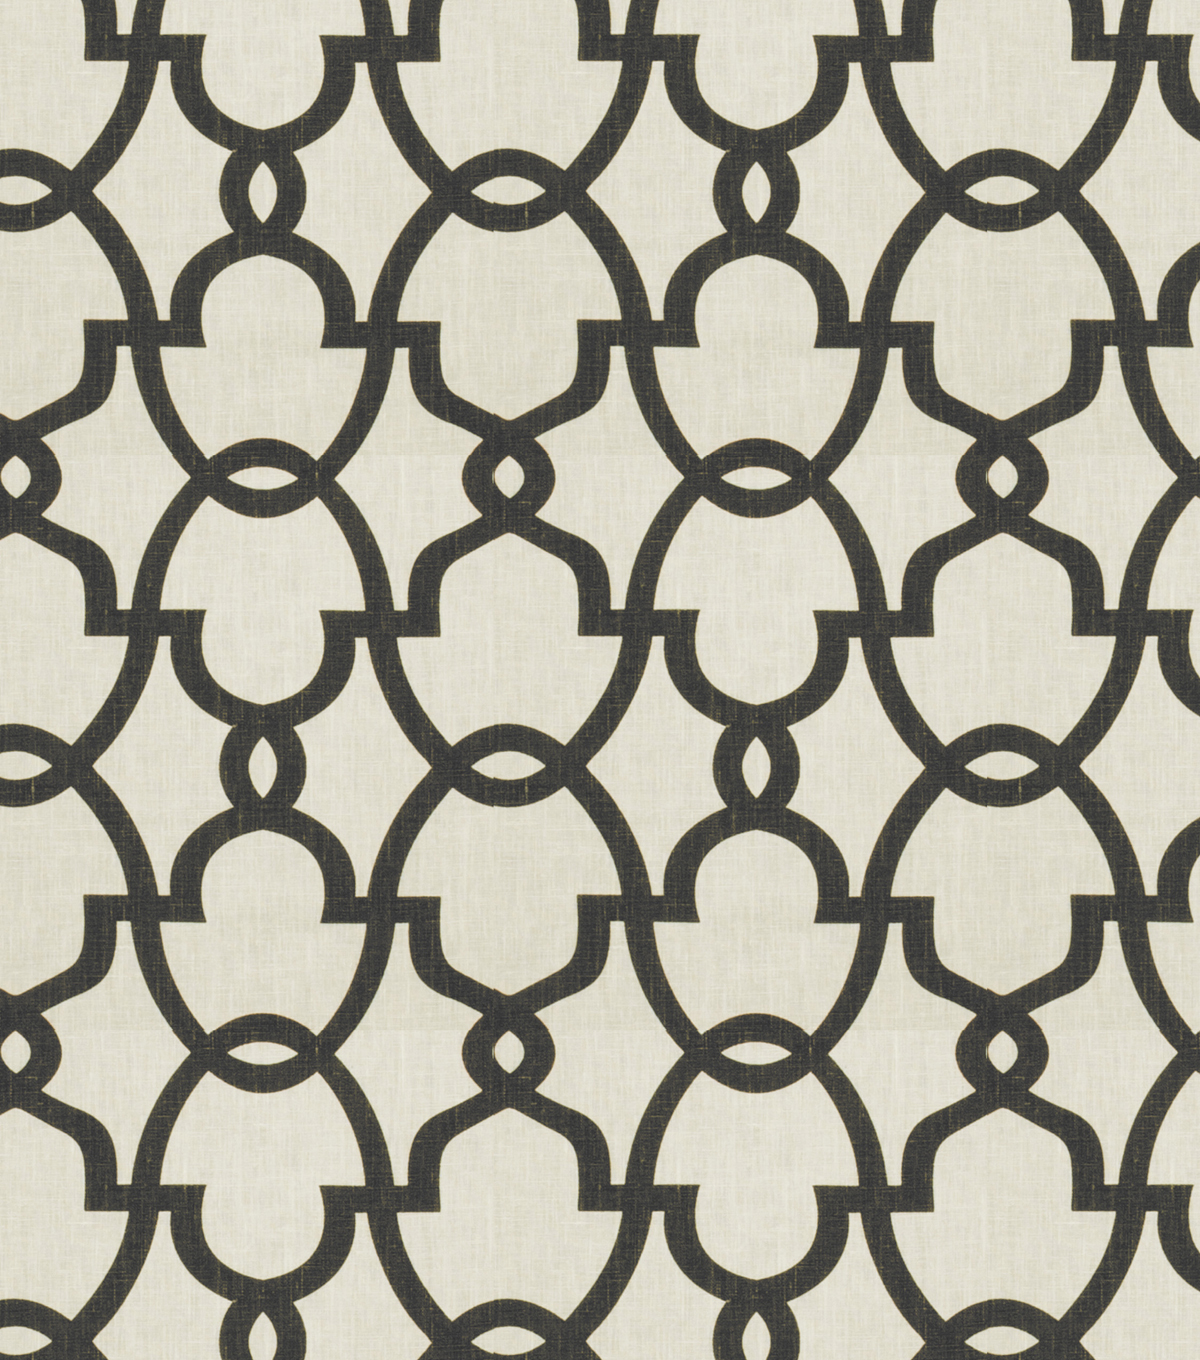 Home Decor 8x8 Fabric Swatch-Eaton Square University Grey